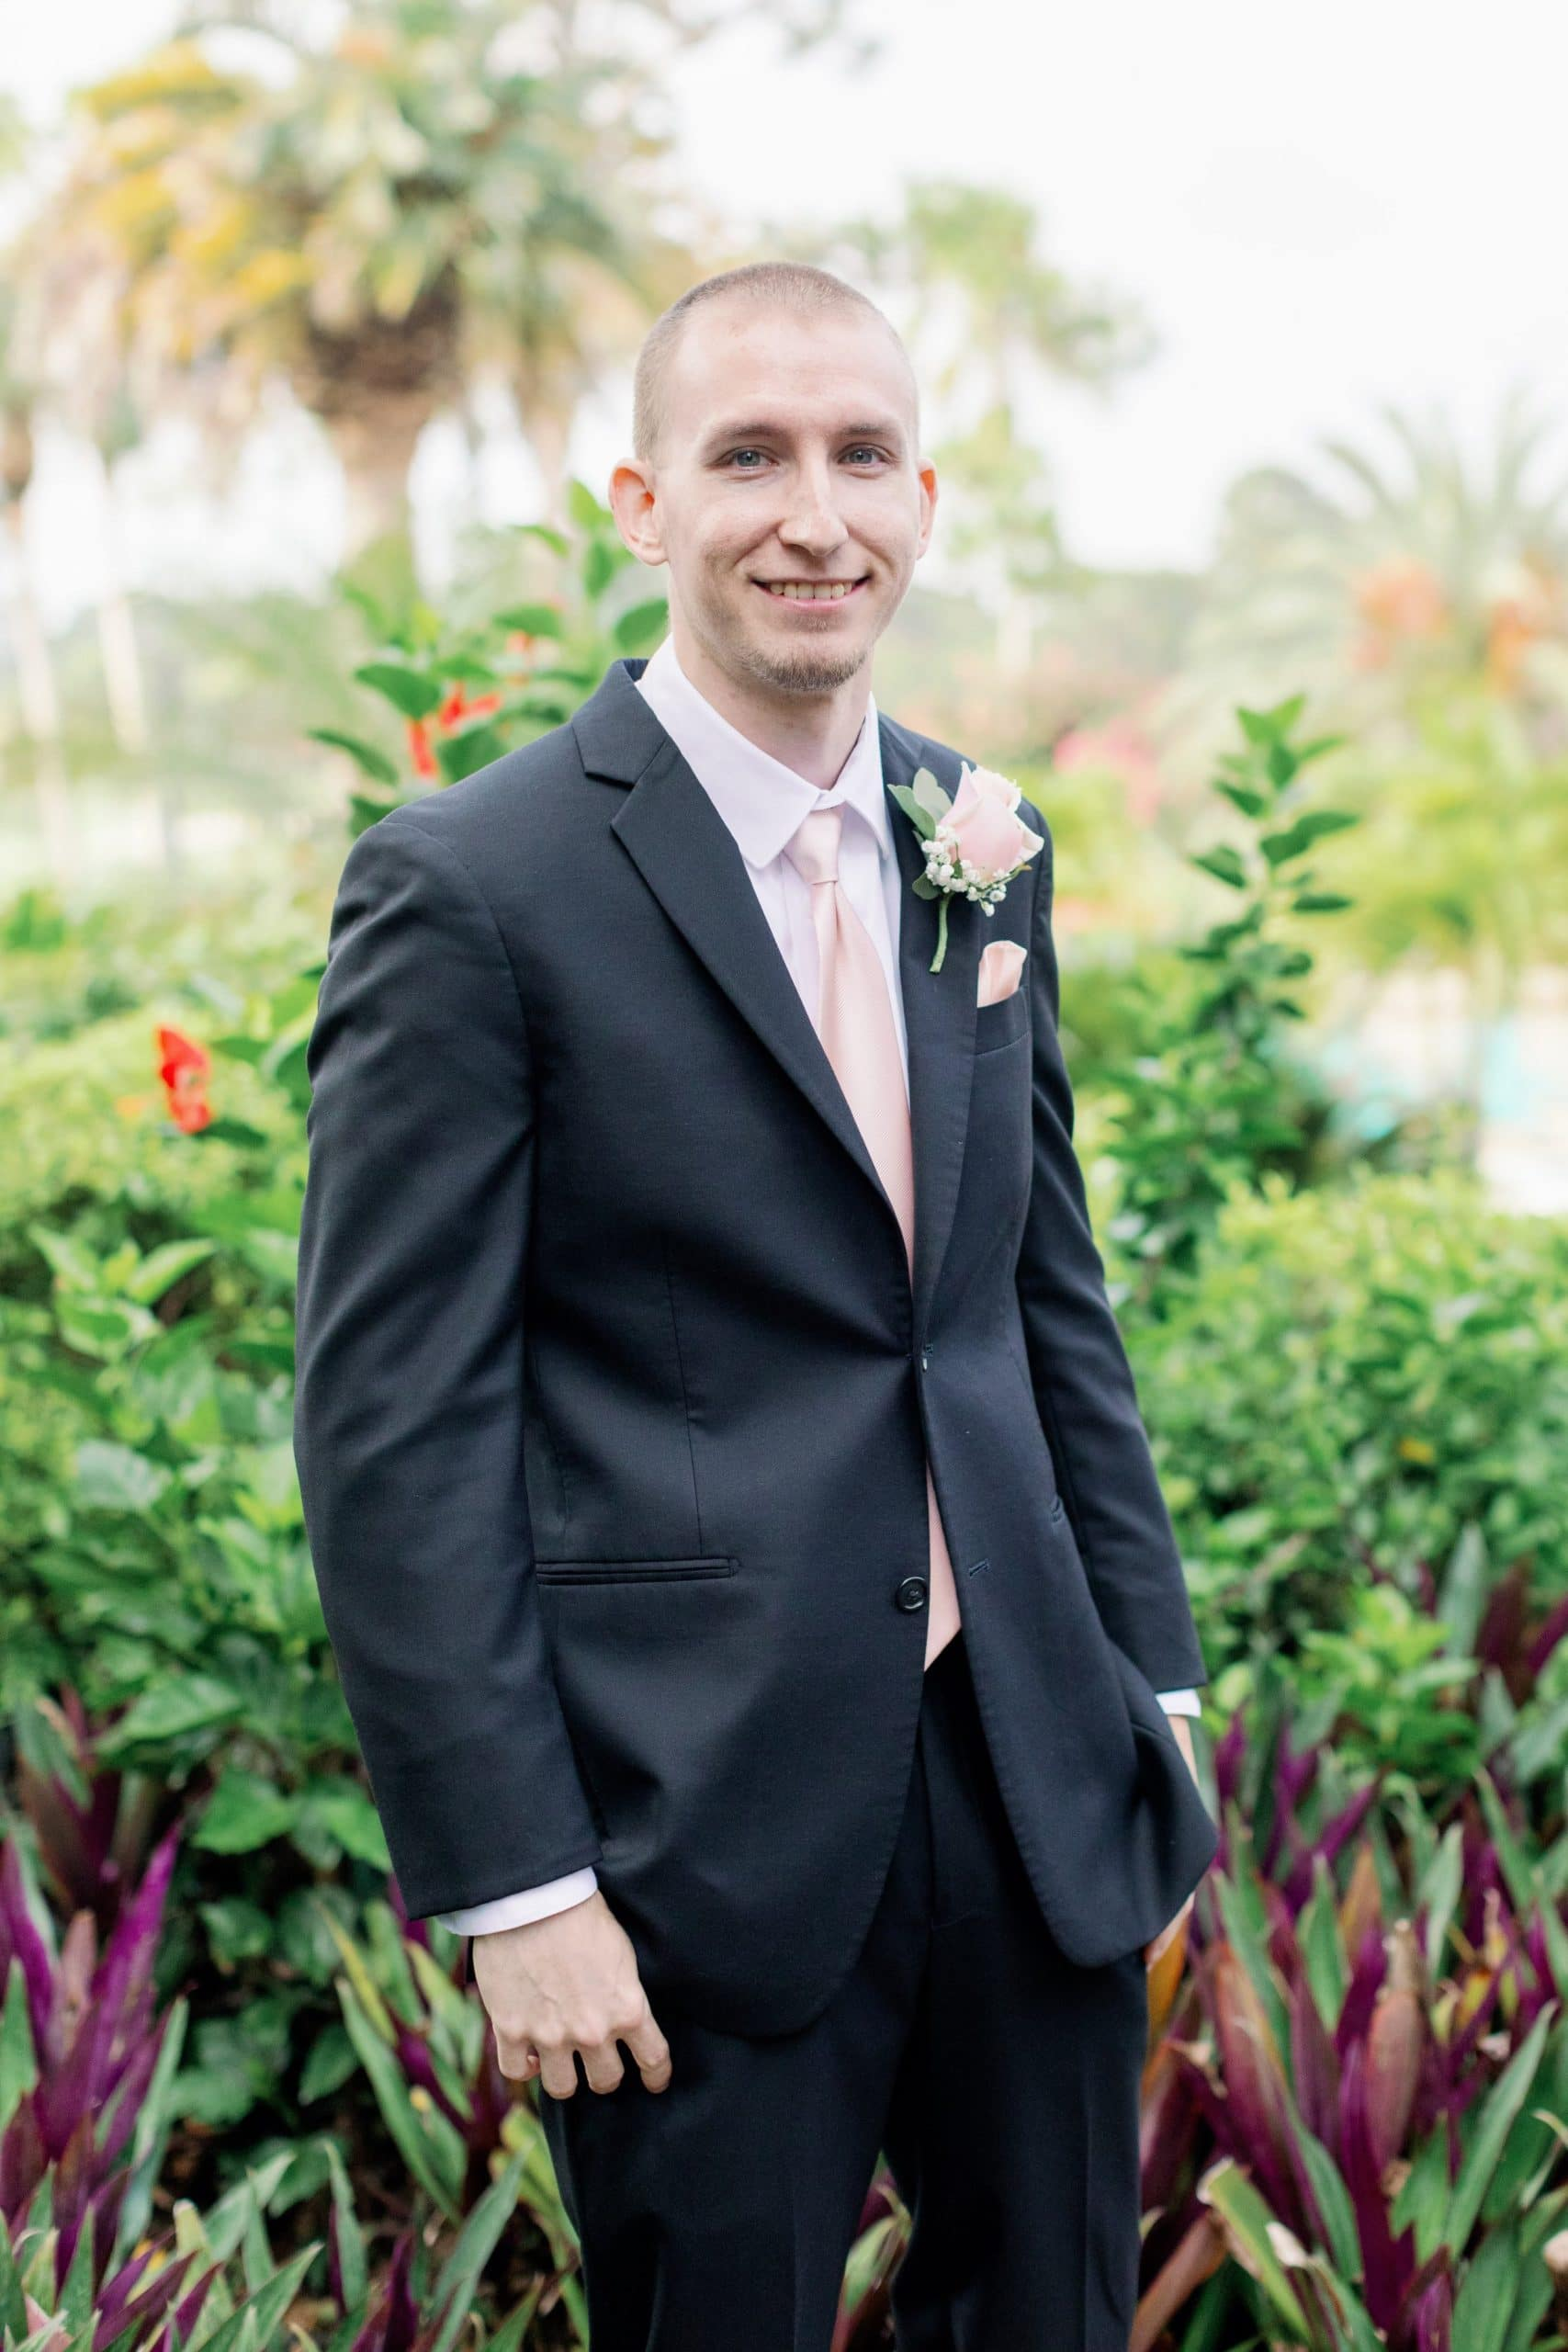 Groom in tux in front of orange lilies